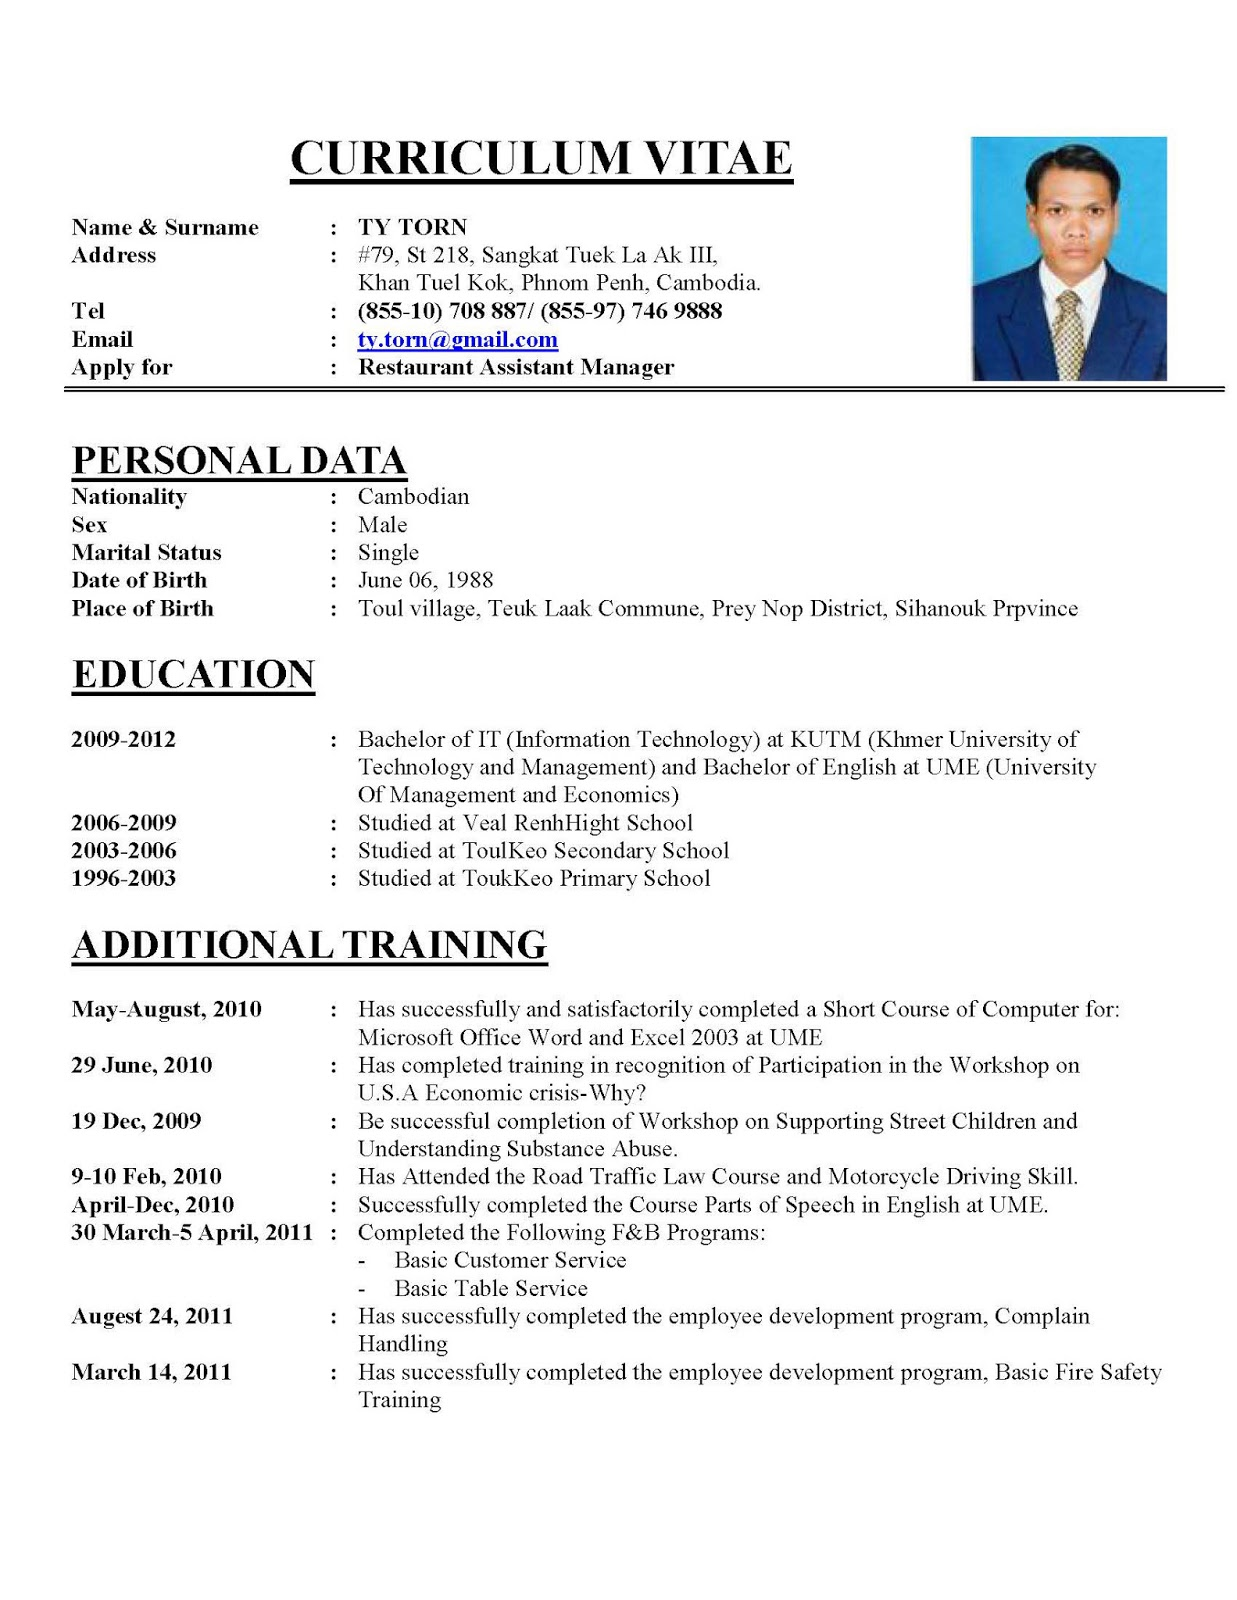 Curriculum Vitae Example In Thesis   Resume Writing Service Biz     Etusivu